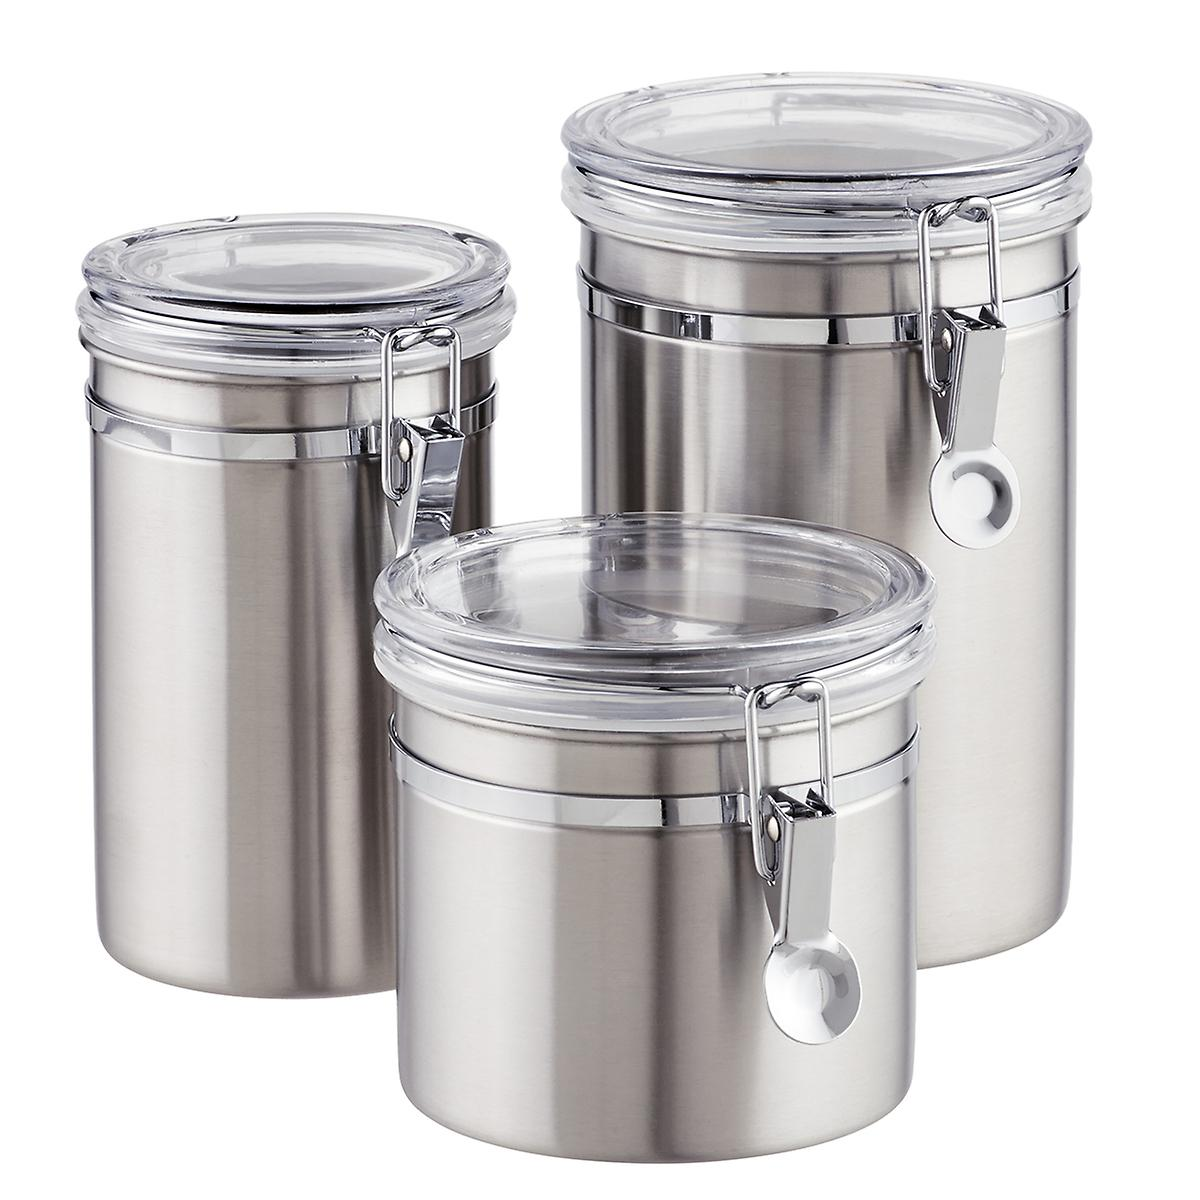 Sensational Brushed Stainless Steel Canisters Best Image Libraries Thycampuscom